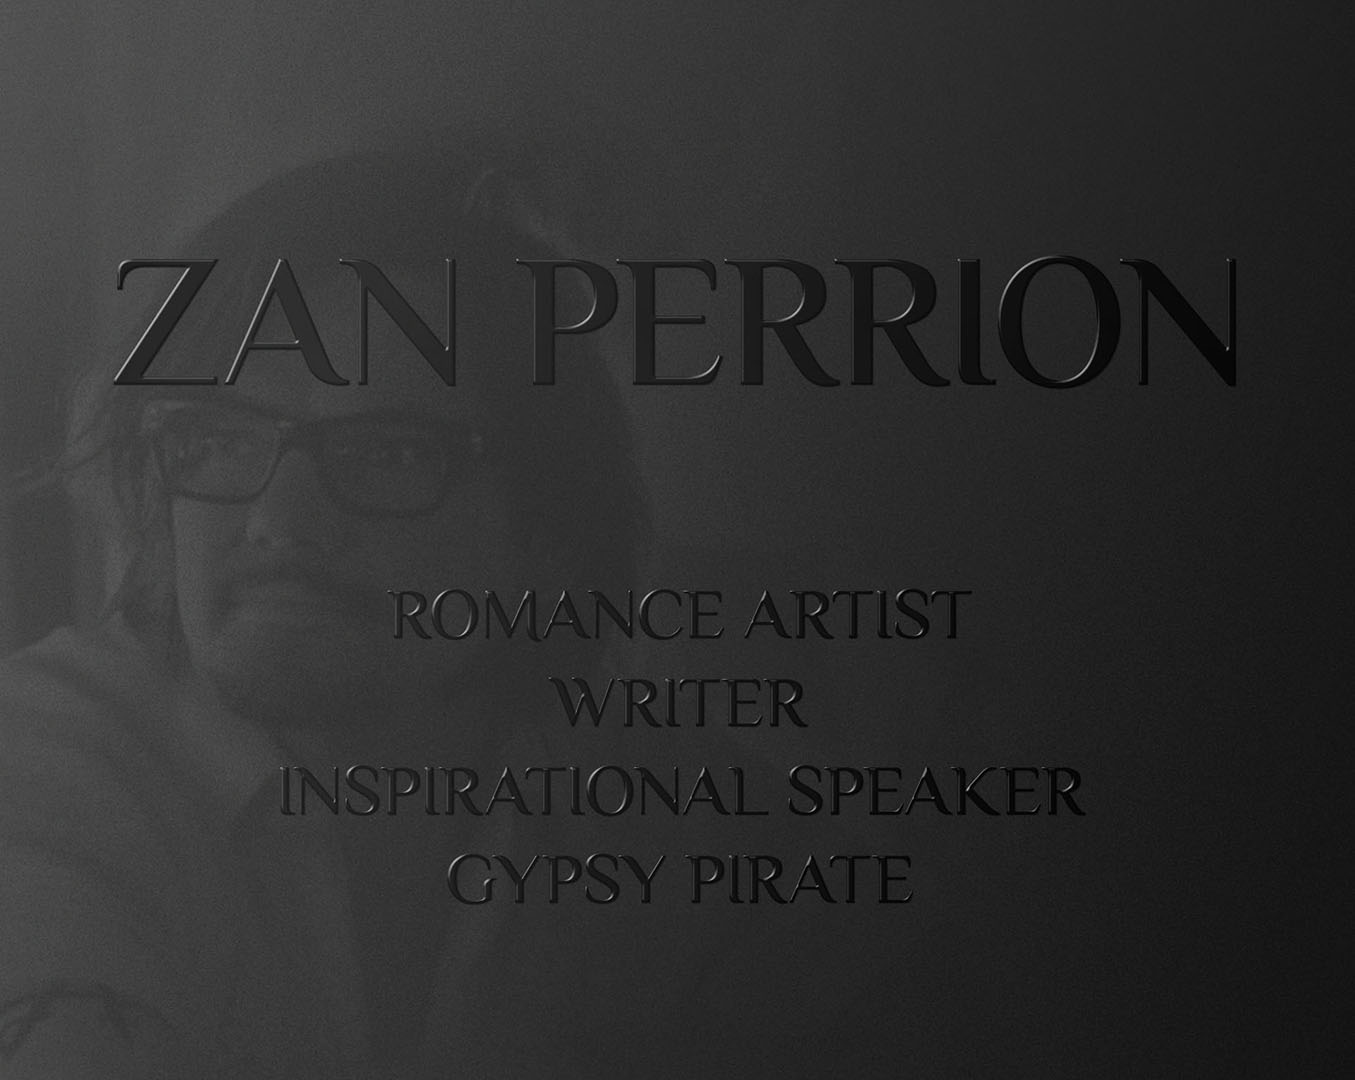 Zan Perrion • Romance artist, writer, inspirational speaker, gypsy pirate